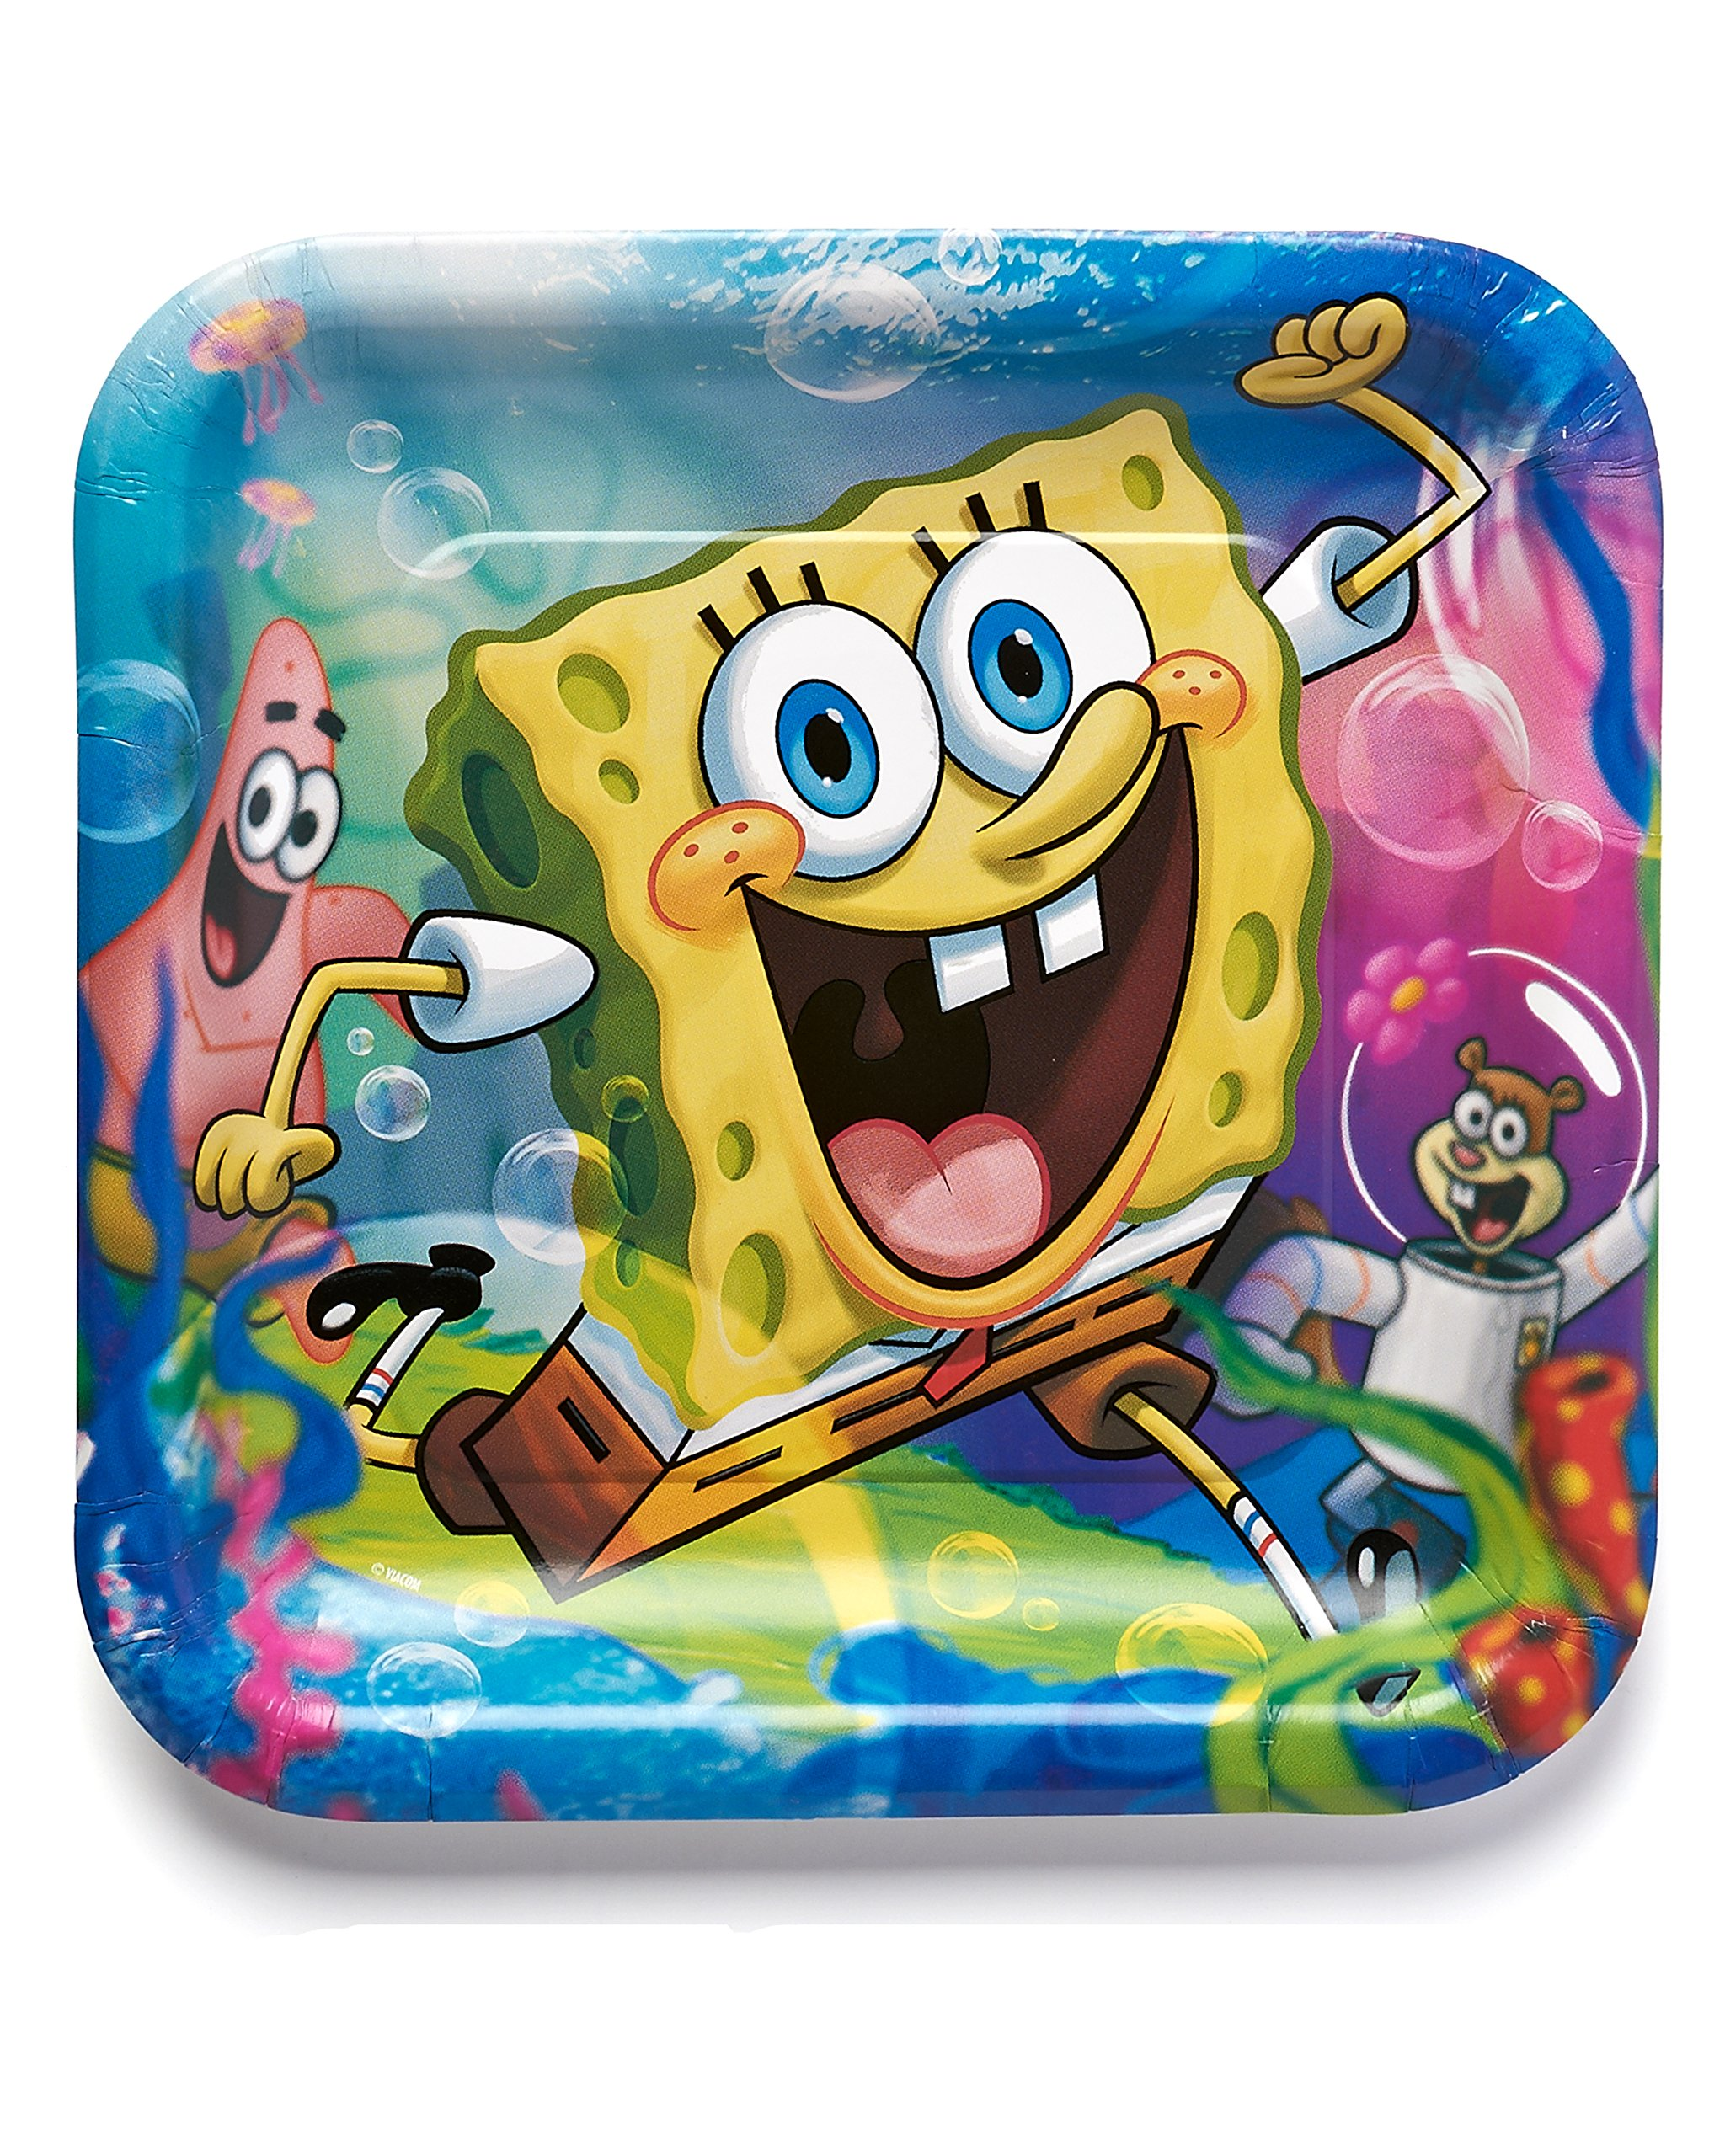 American Greetings SpongeBob SquarePants 9'' Square Plate, Party Supplies Novelty (8-Count)